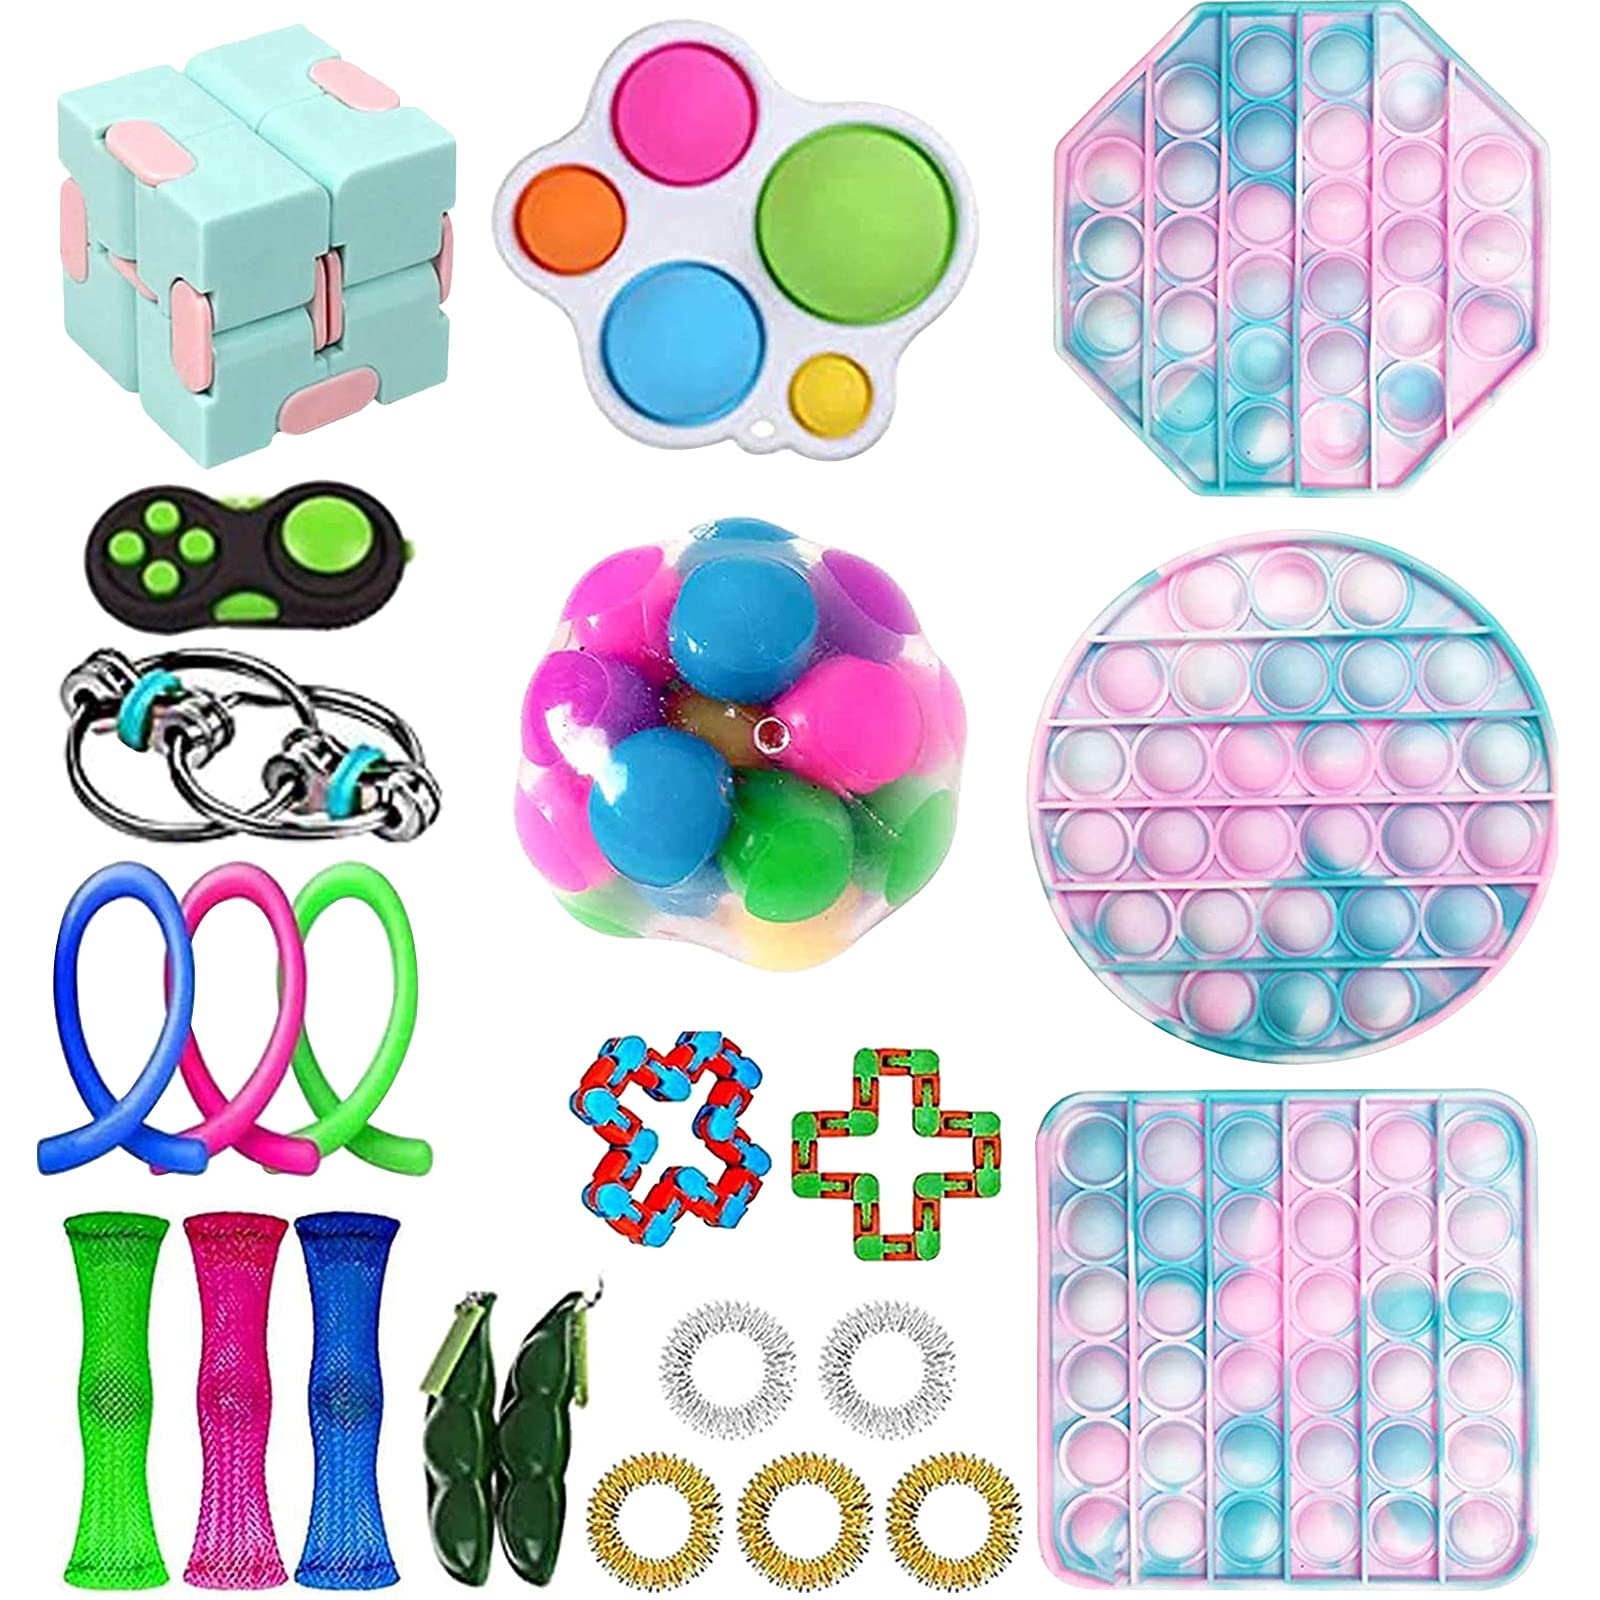 OLOPE 30Pcs Sensory Fidget Toy Set, Fidget Pack Sensory Relieves Stress Anxiety Fidget Toy for Kids Adults,Special Toys Assortment for Birthday Party Favors, Classroom Rewards Prizes (Q1)